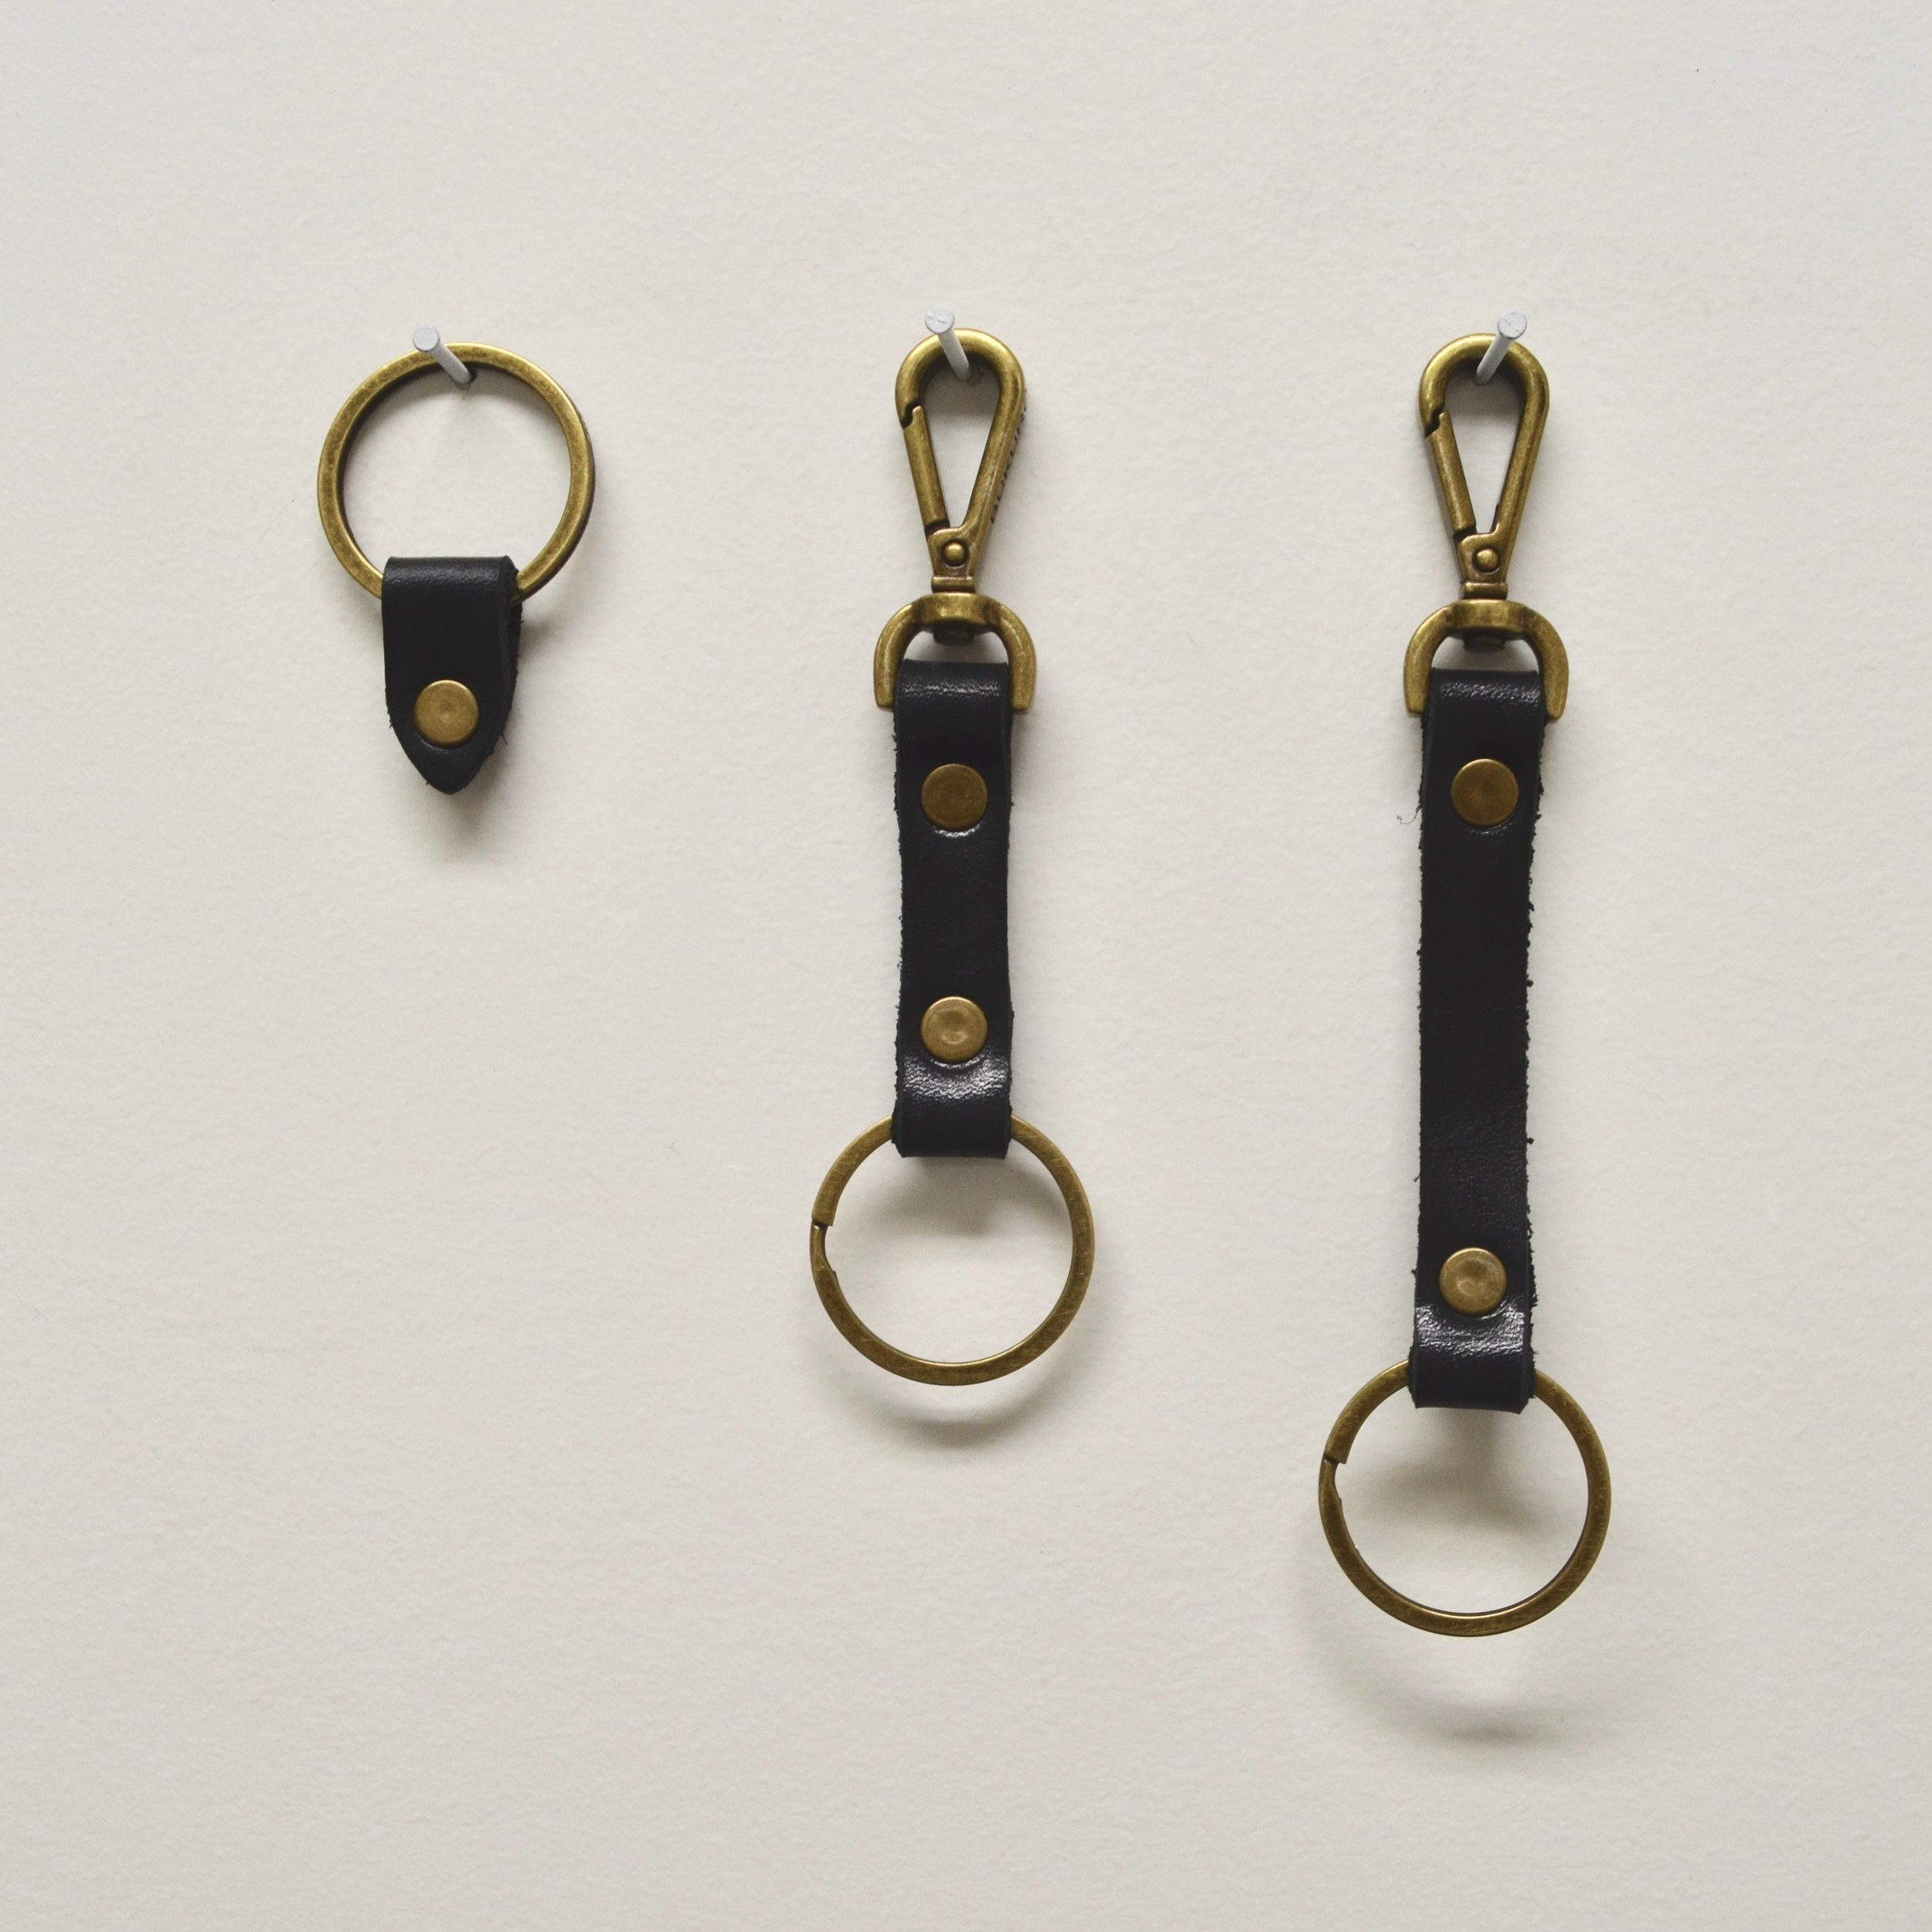 "- LEATHER TAB KEYRING IN BLACK, 5"" LEATHER CLIP KEYRING IN BLACK & 61/4"" CLIP KEYRING IN BLACK"